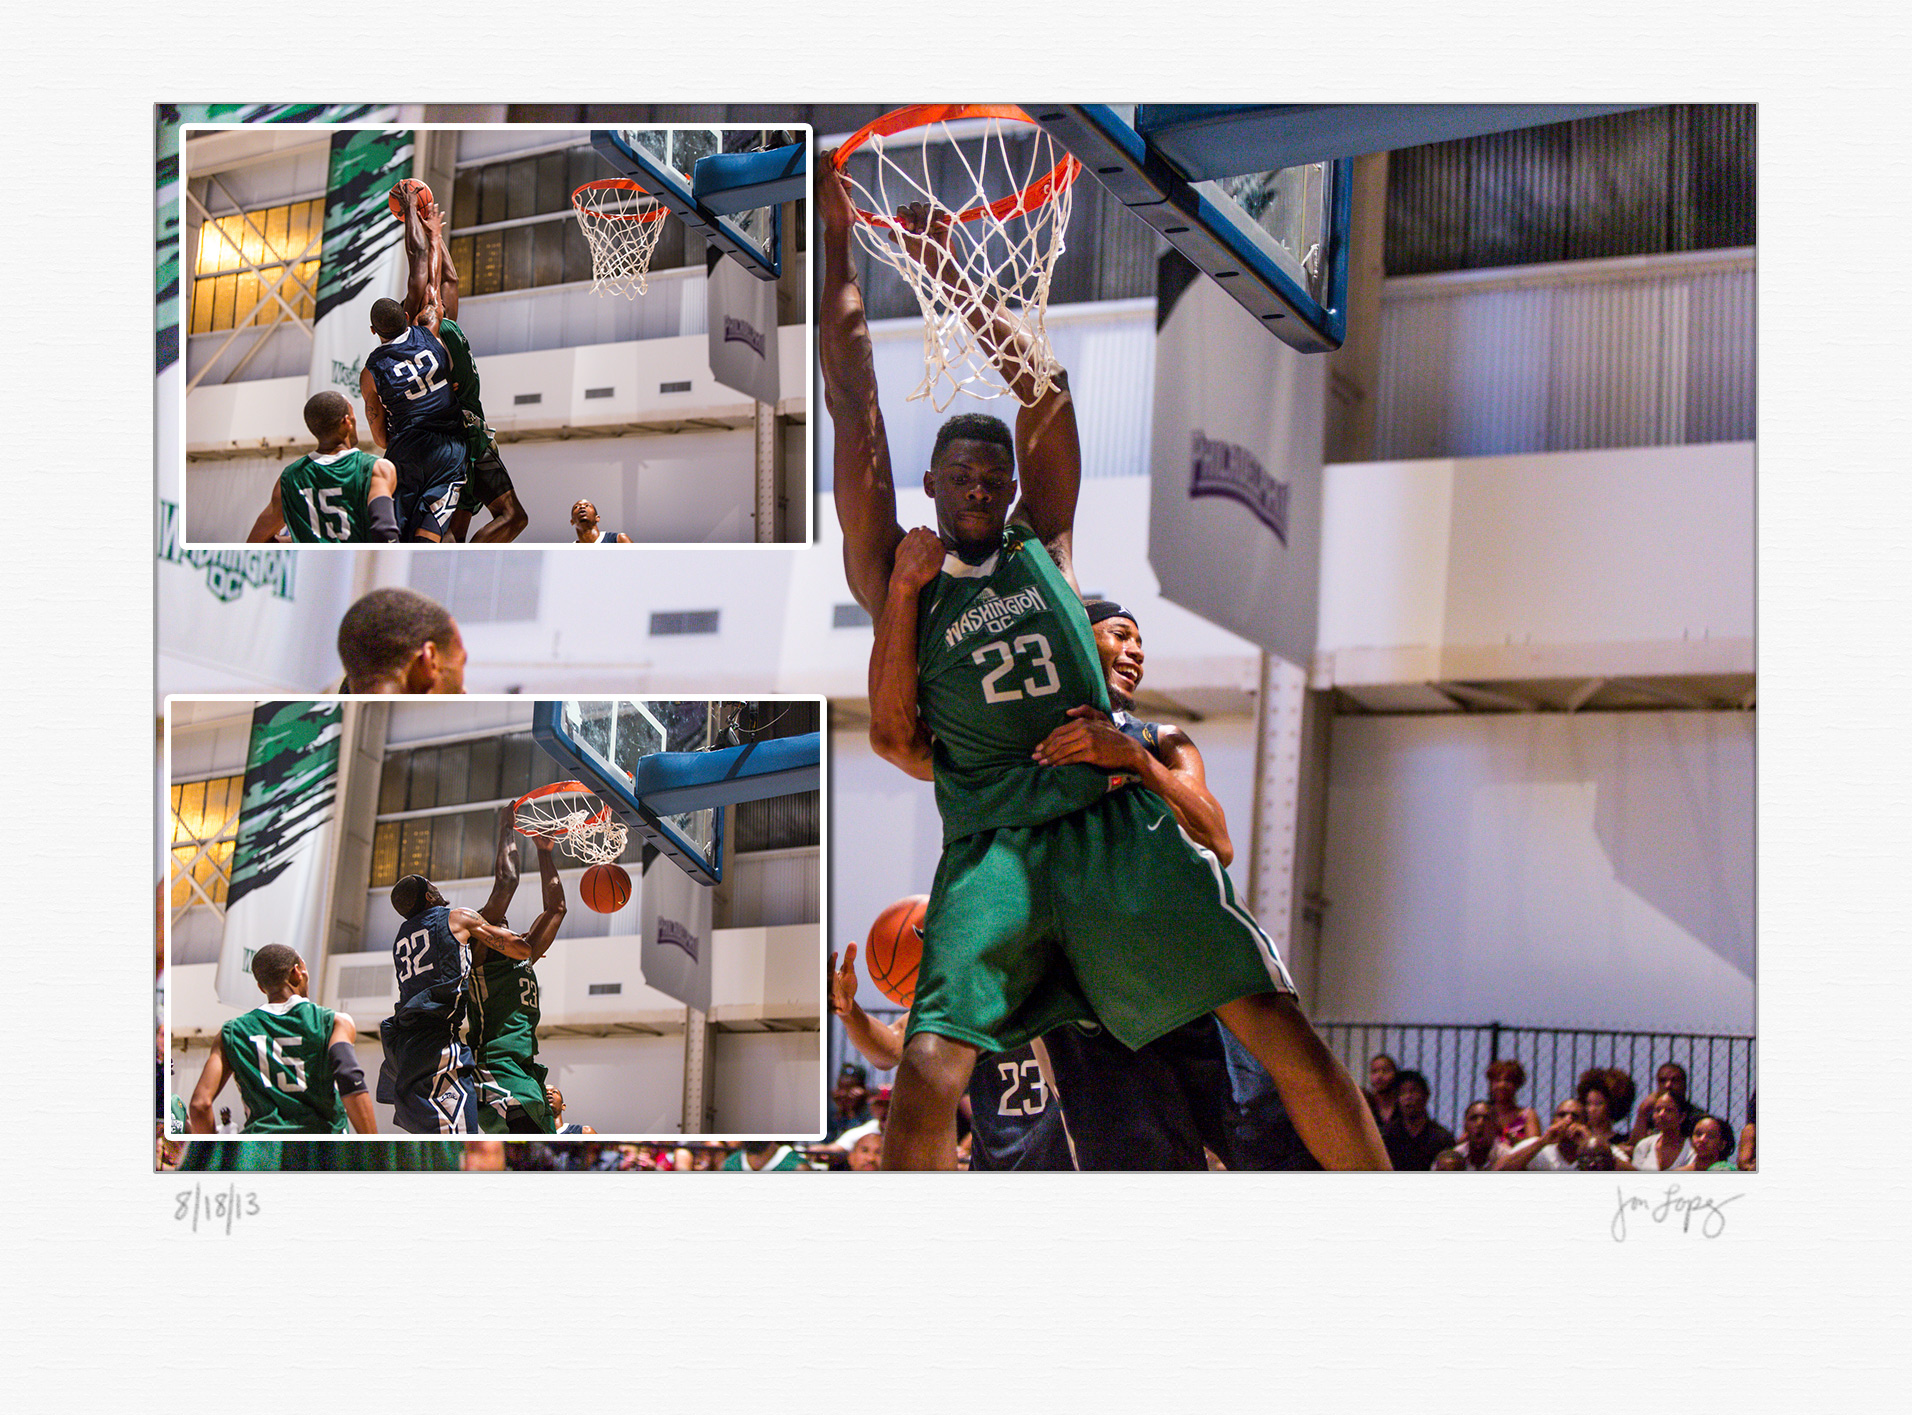 This dunk was so ferocious that the victim had to give the dunker a hug on the way down.